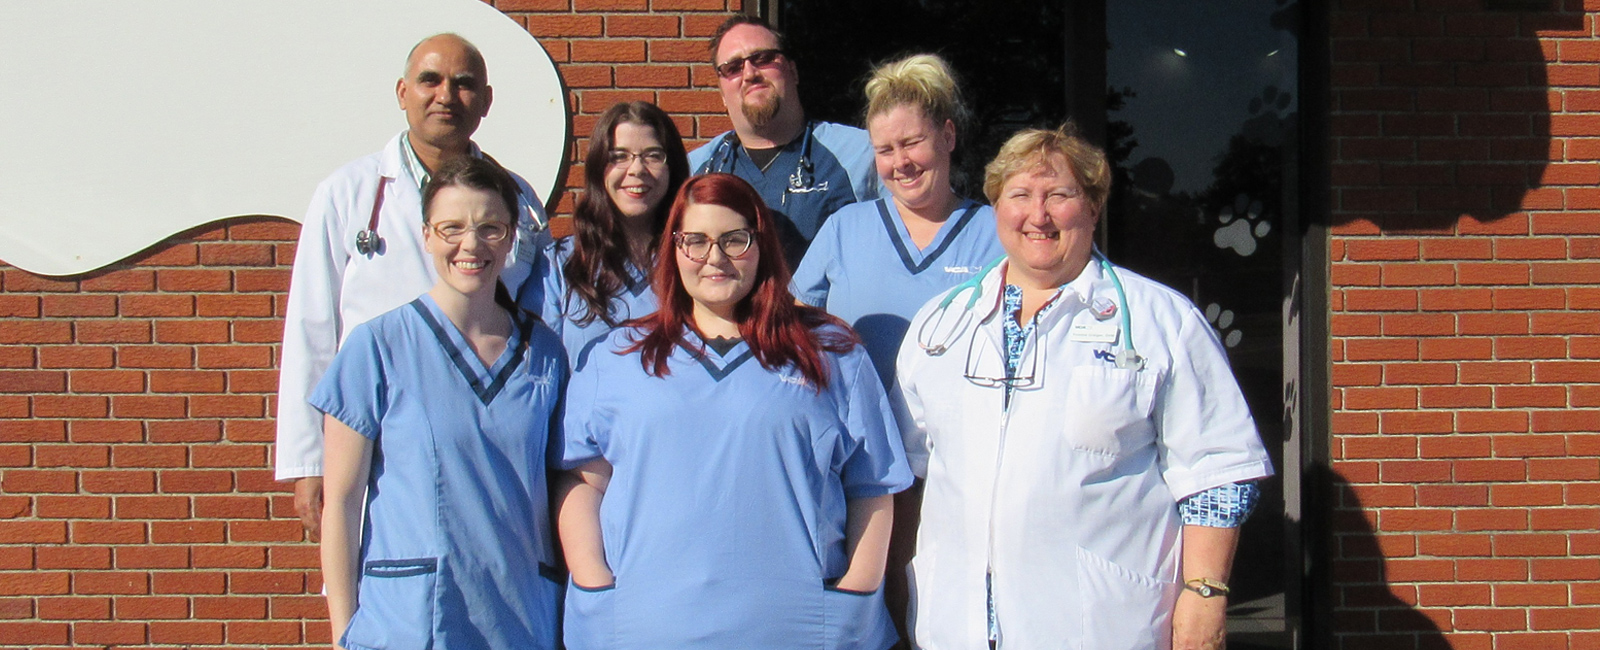 Team Picture of VCA Southland Animal Hospital